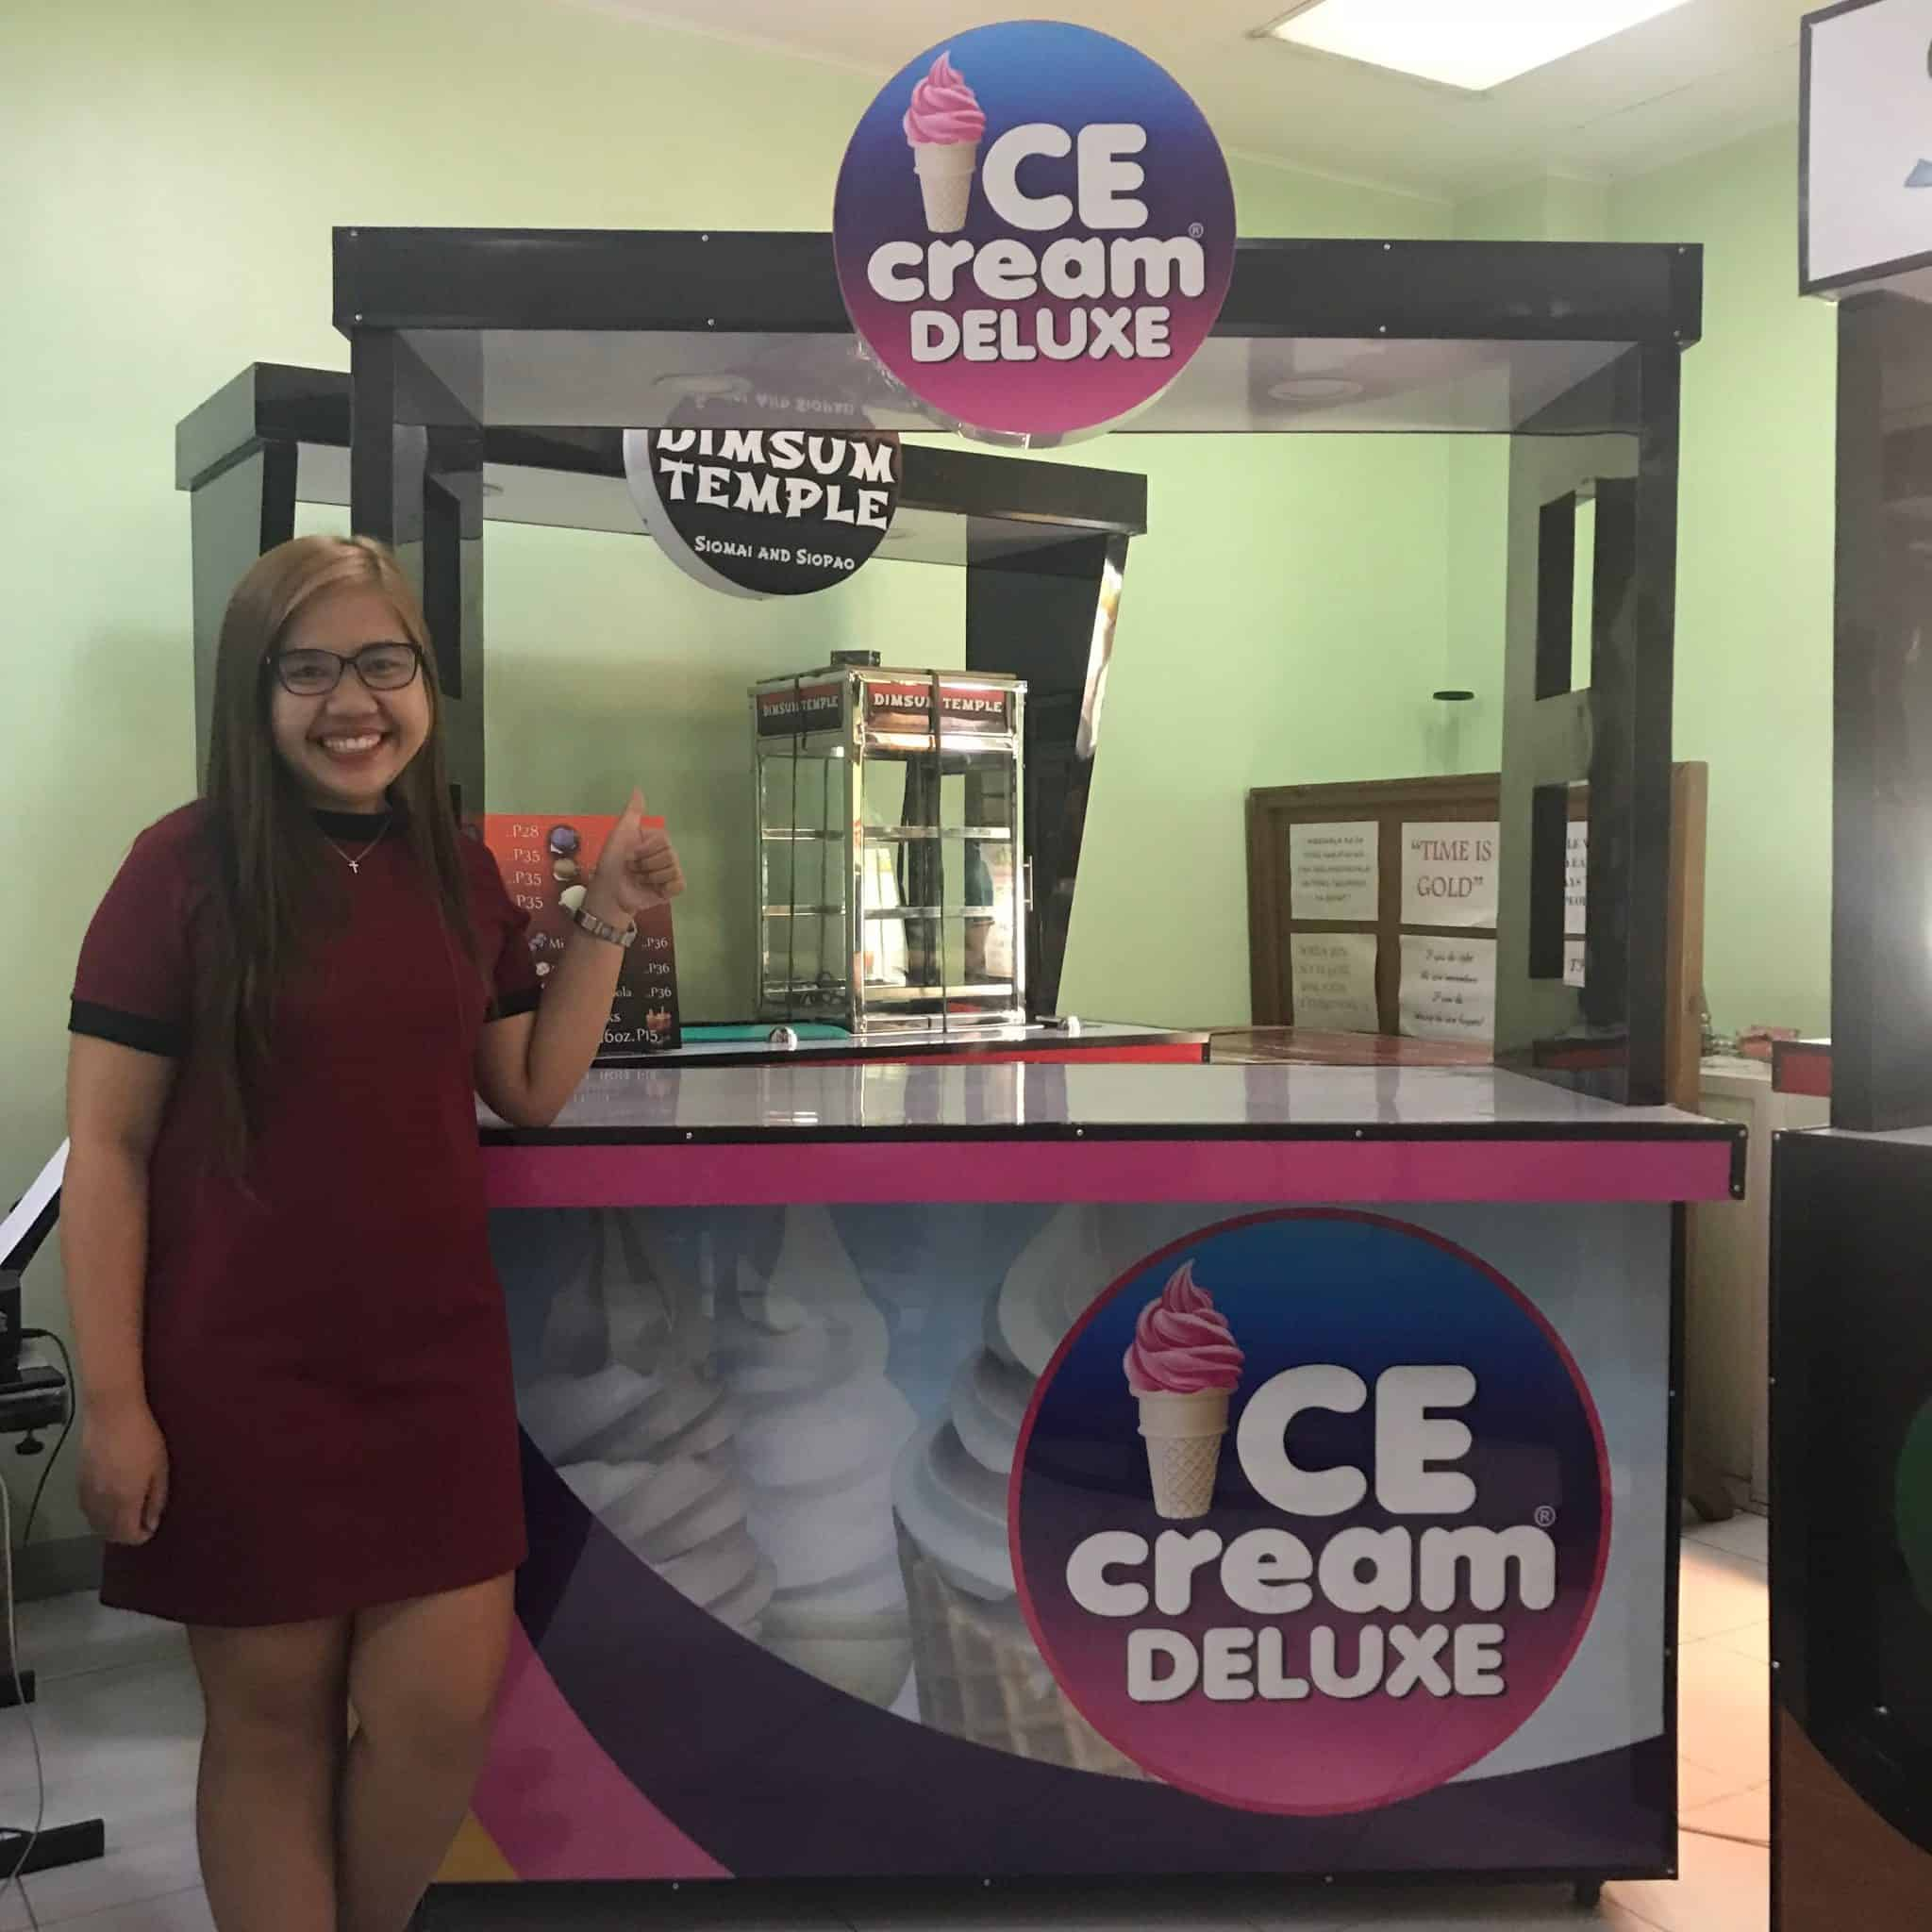 ice cream deluxe logo